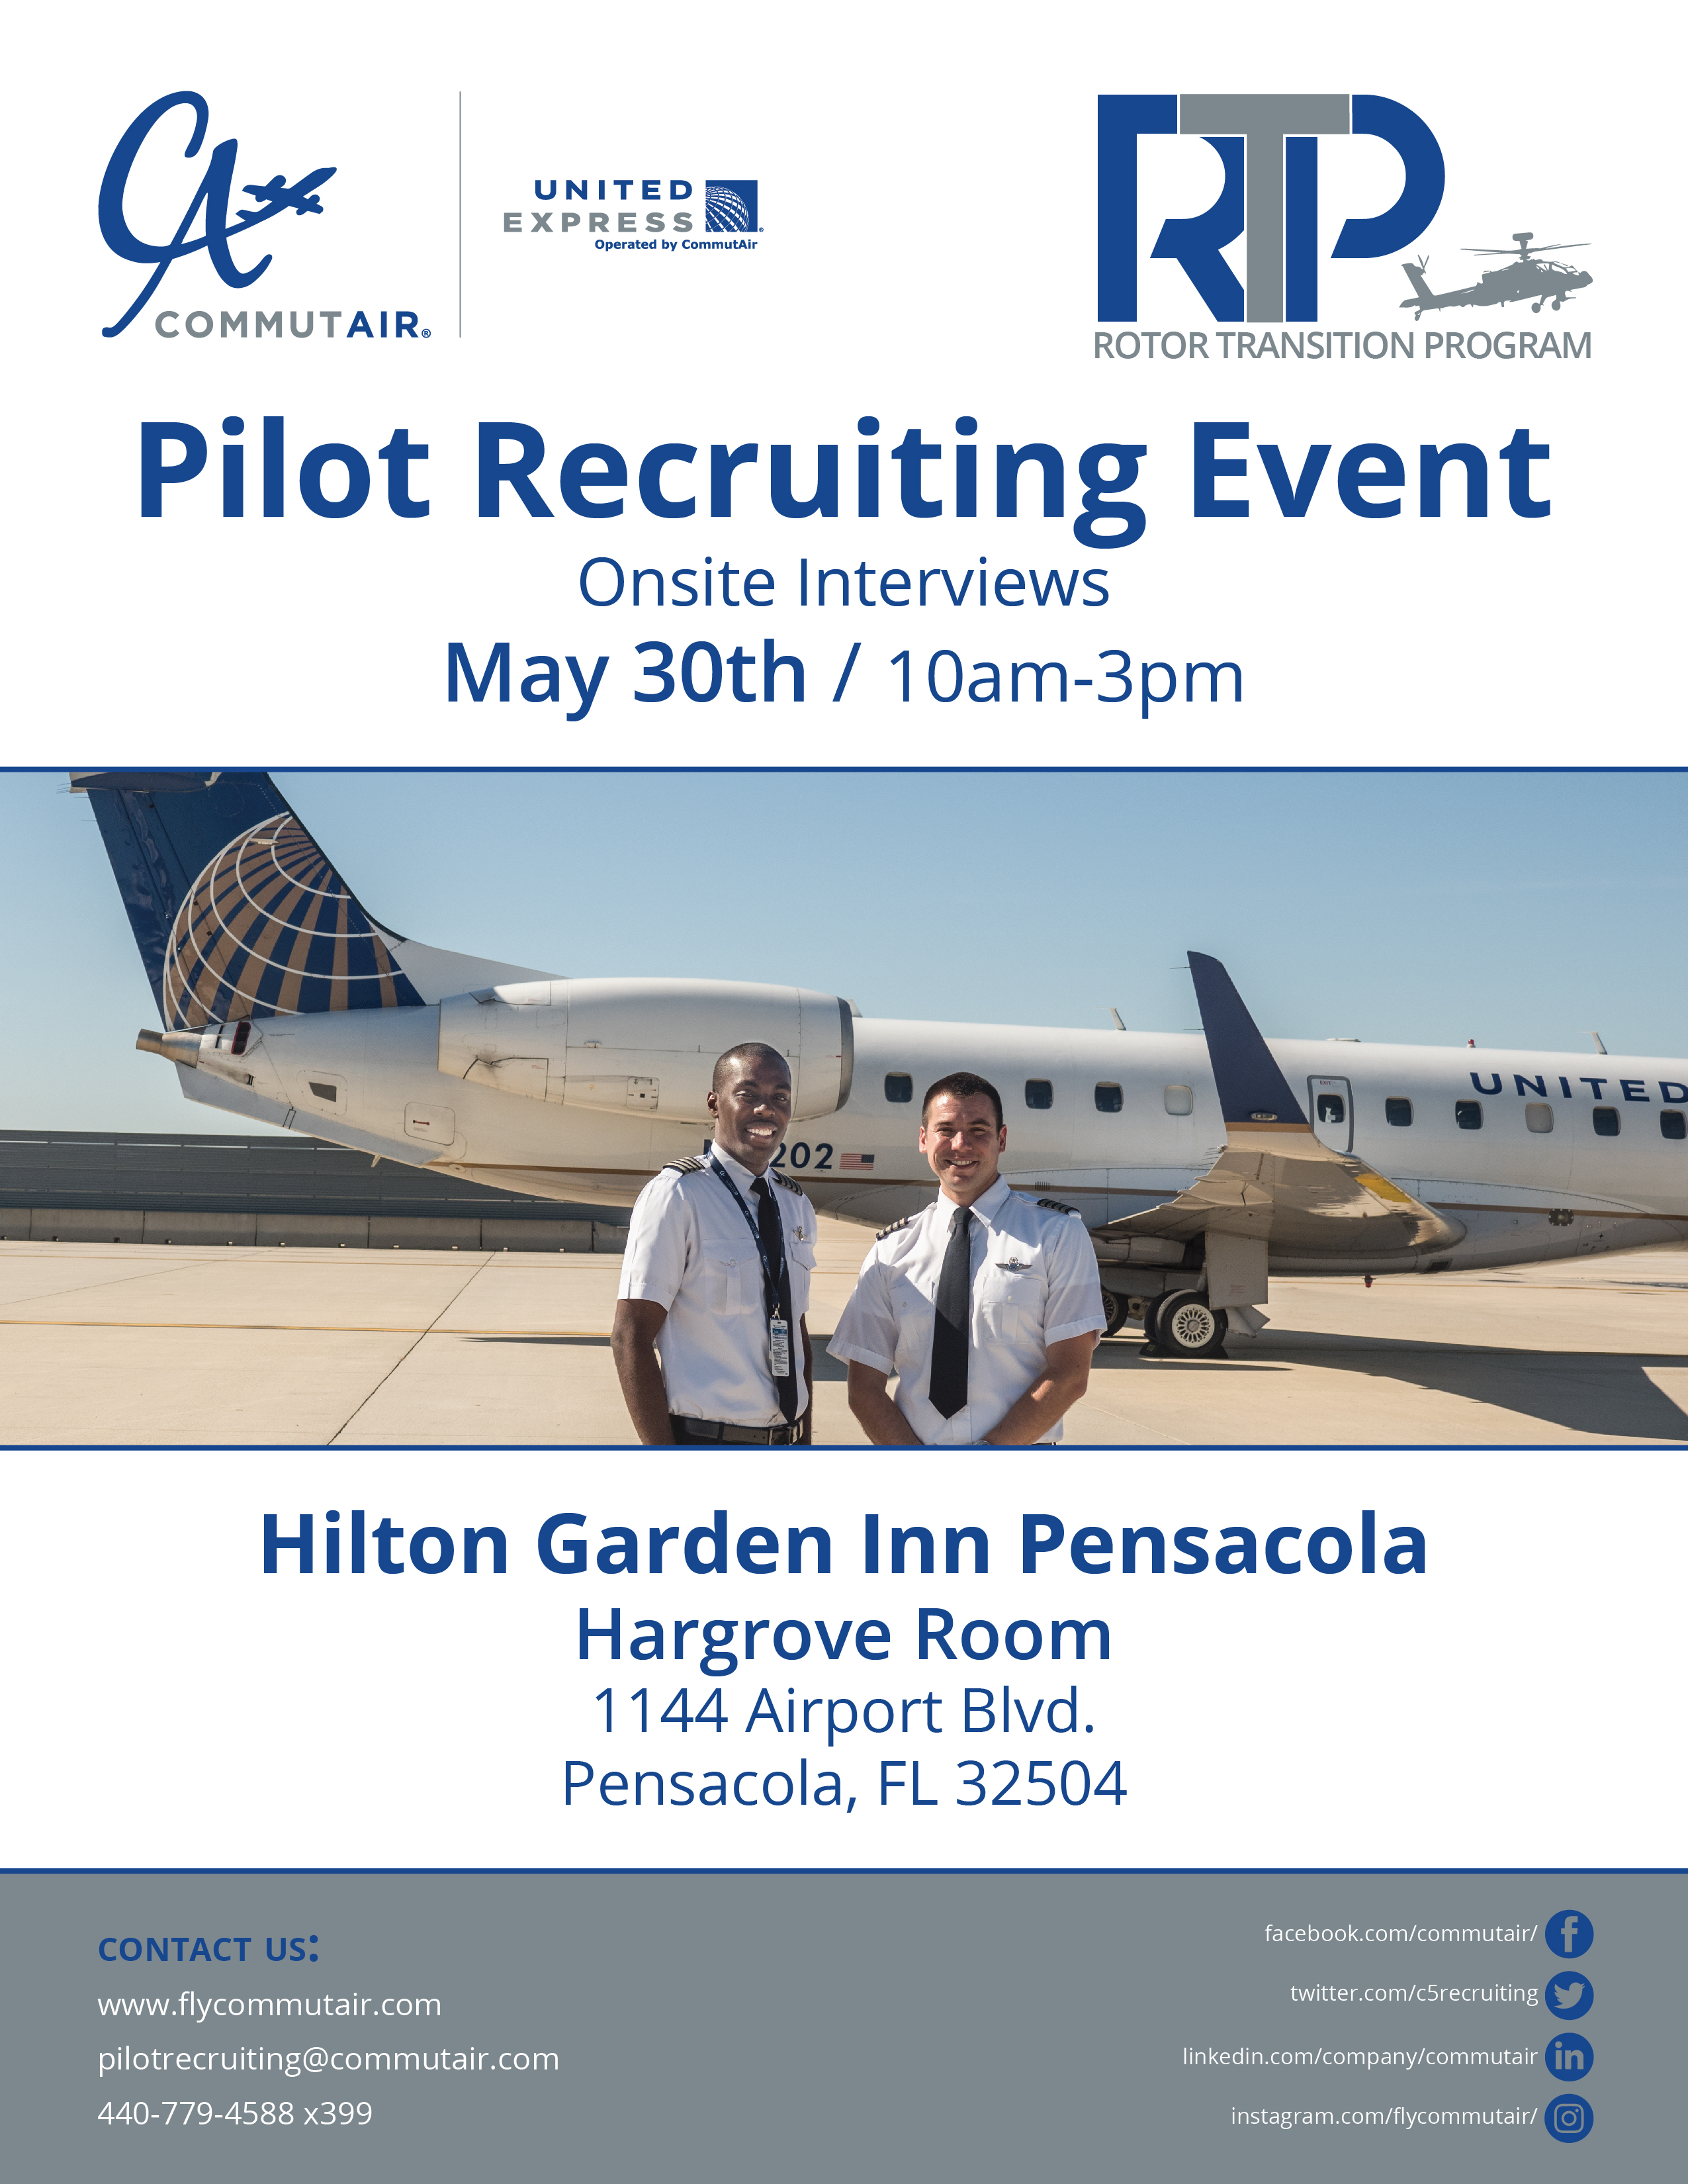 Just A Reminder That TOMORROW CommutAir Will Be In Pensacola Conducting  Onsite Pilot Interviews!